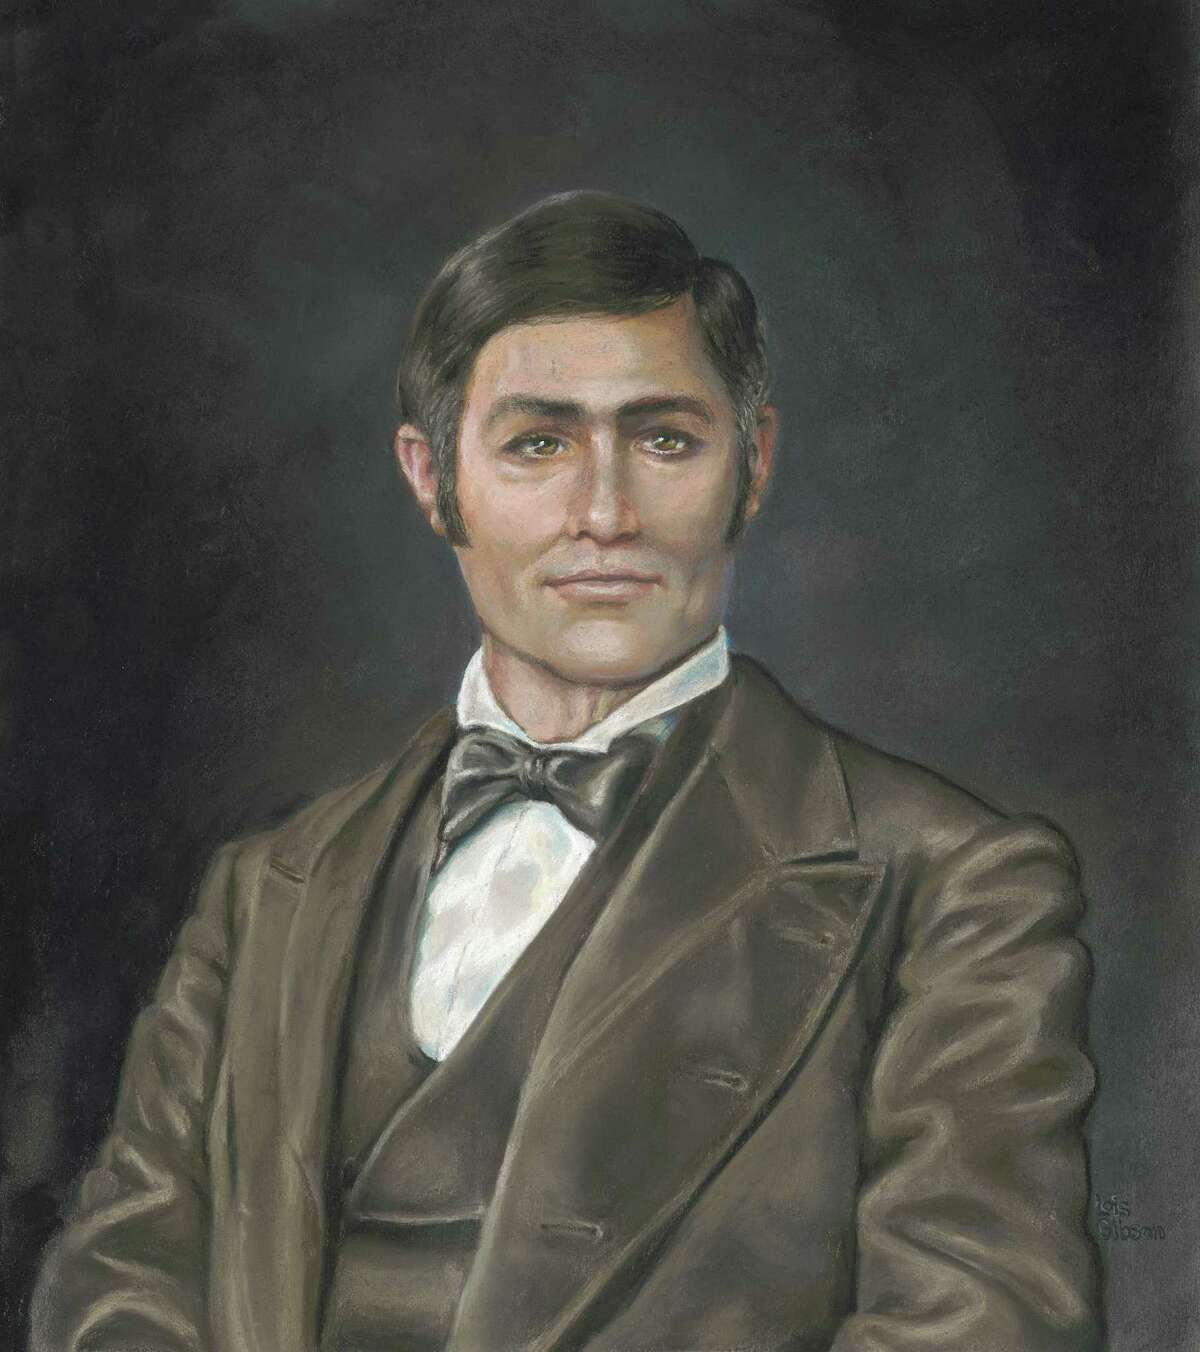 This portrait of José Miguel de Arciniega, a respected military explorer and statesman in the 1800s, was created by Houston forensic artist Lois Gibson. She did the pastel portrait with colored chalks on acid-free paper. There are no existing photographs or artwork of Arciniega; this is one of two images involved in a family lawsuit over which is the more historically accurate.